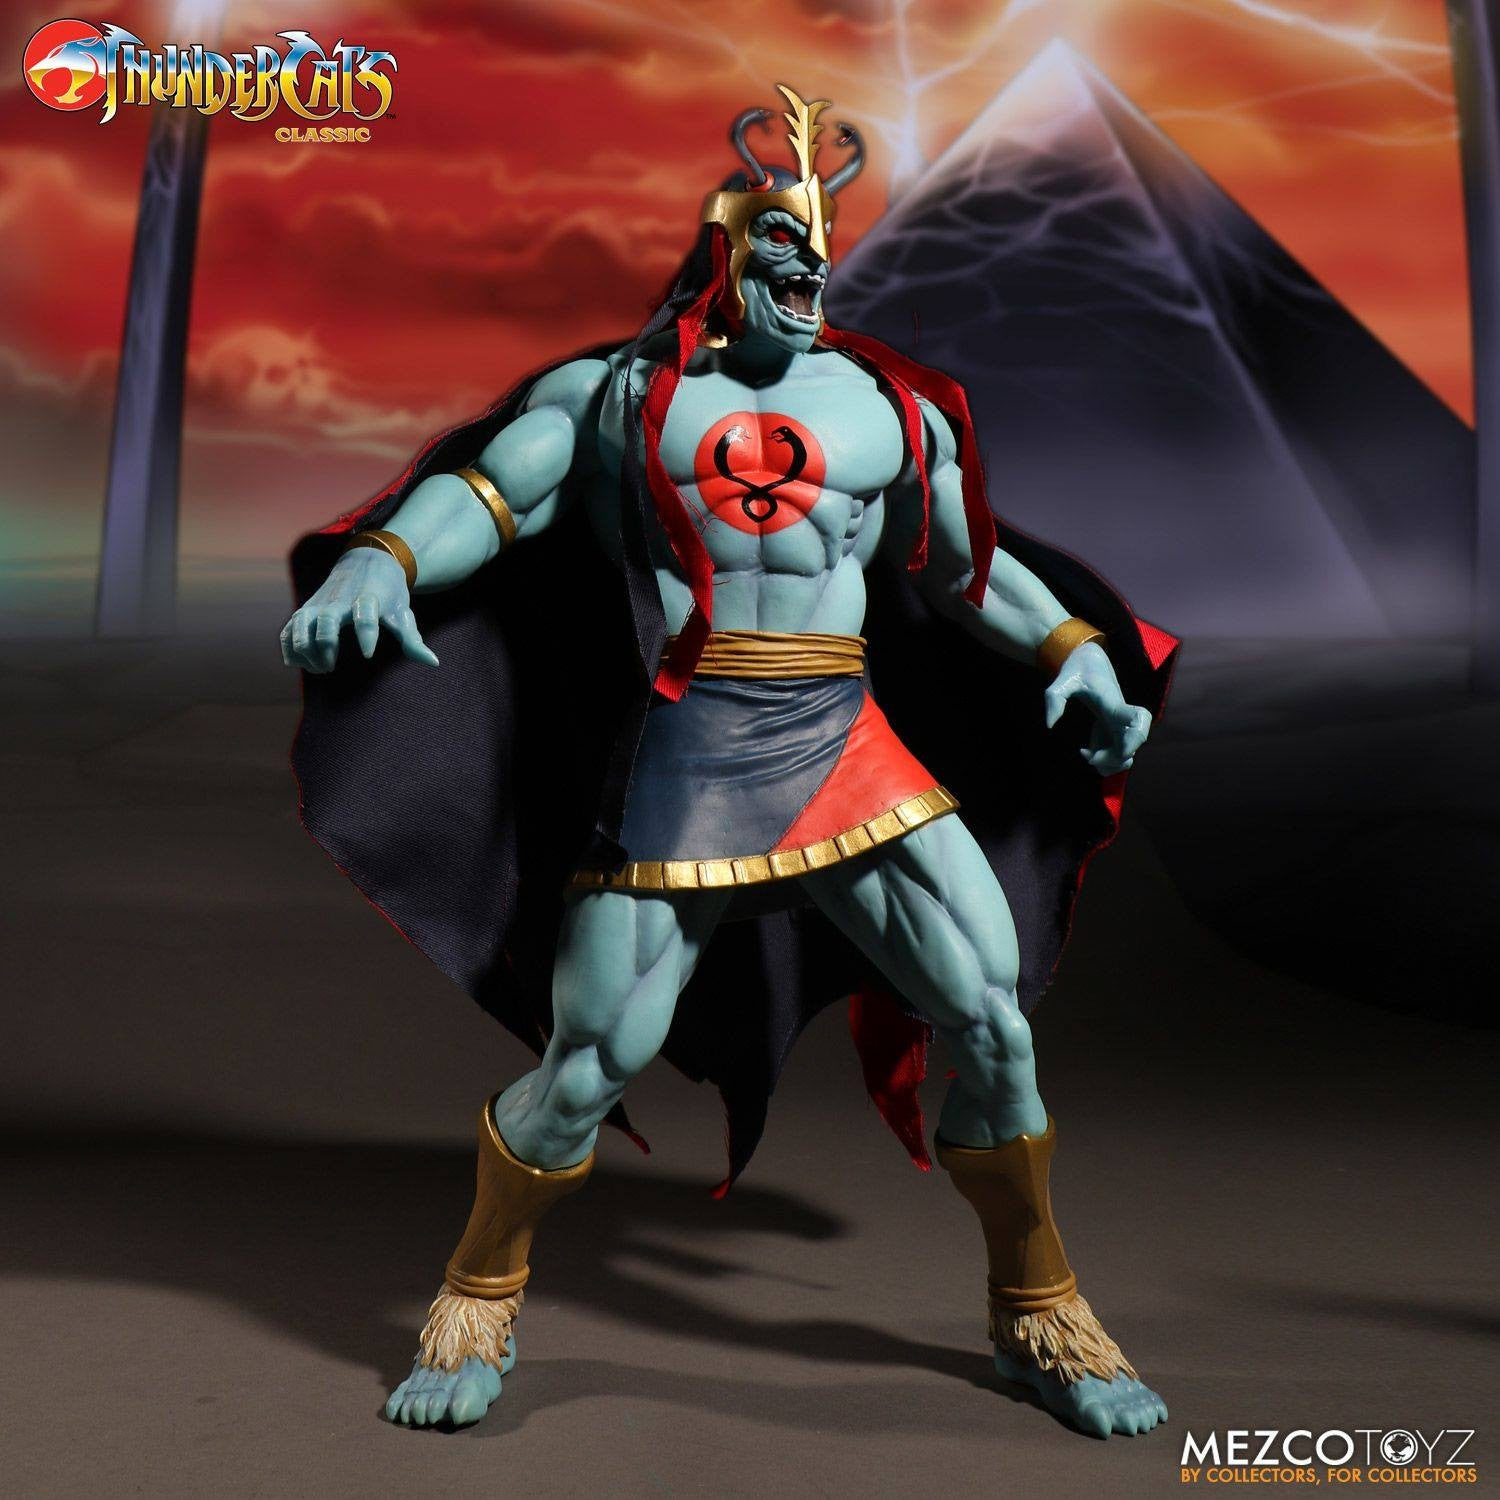 Mezco - Mega Scale - Thundercats - Mumm-Ra (Glow in the Dark Edition) - Marvelous Toys - 1